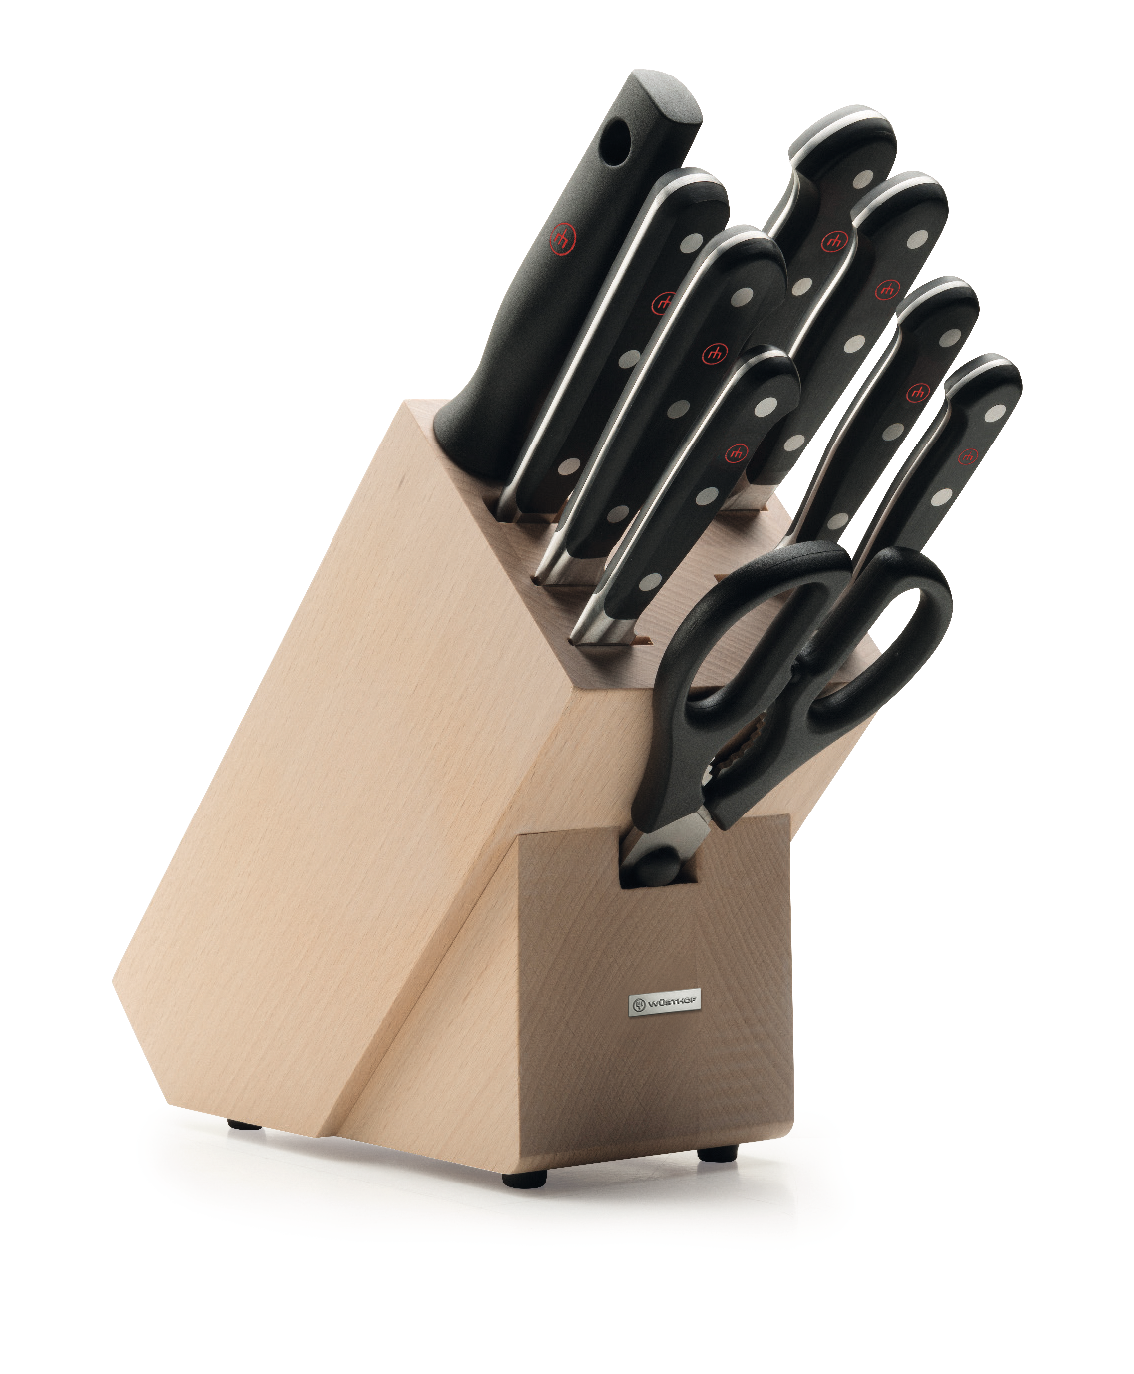 WUSTHOF CLASSIC KNIFE BLOCK SET 9 PIECES